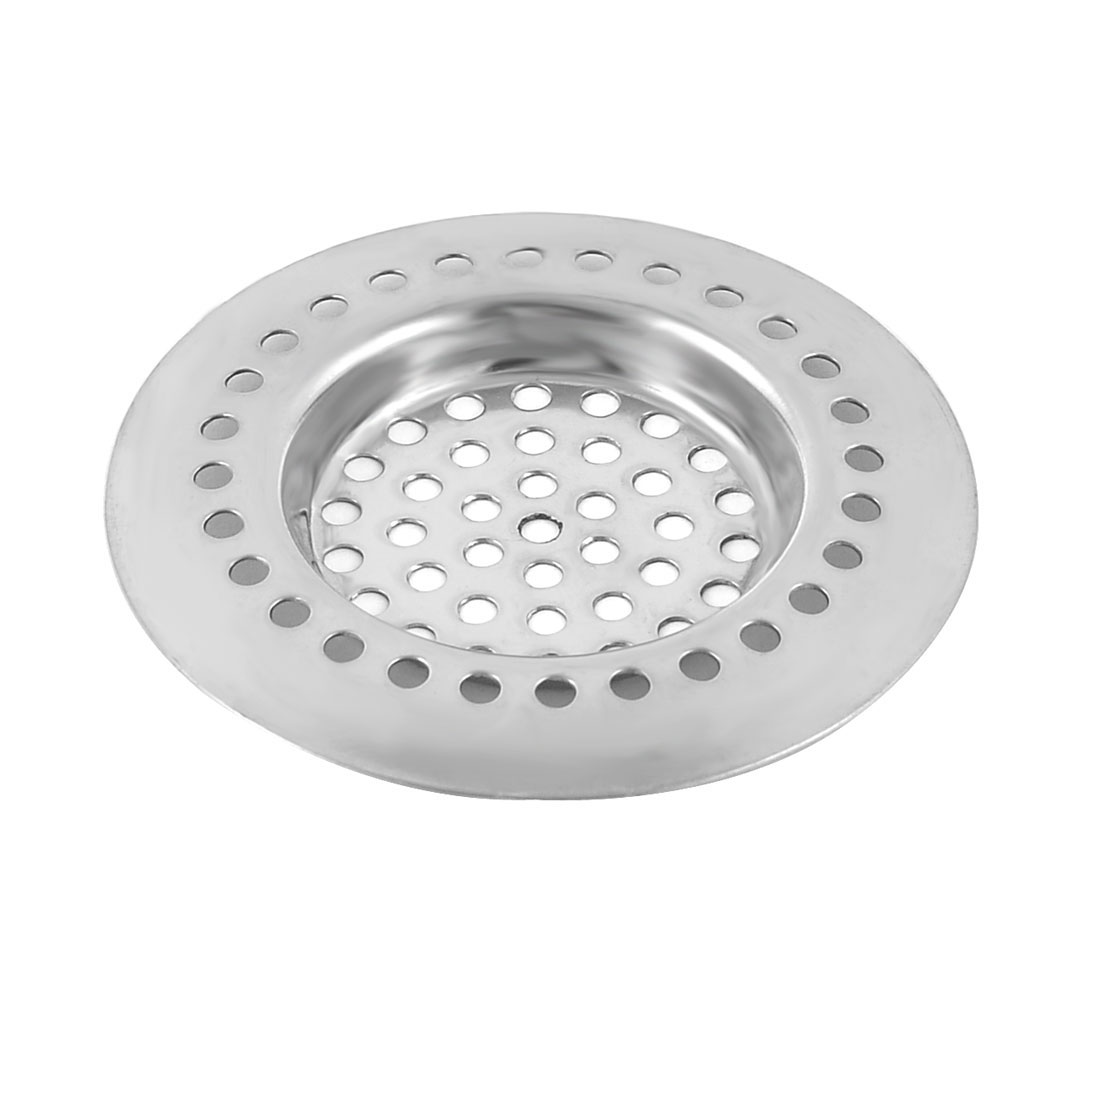 Household Kitchen Bathroom Metal Sink Drain Strainer Mesh Filter Sliver Tone